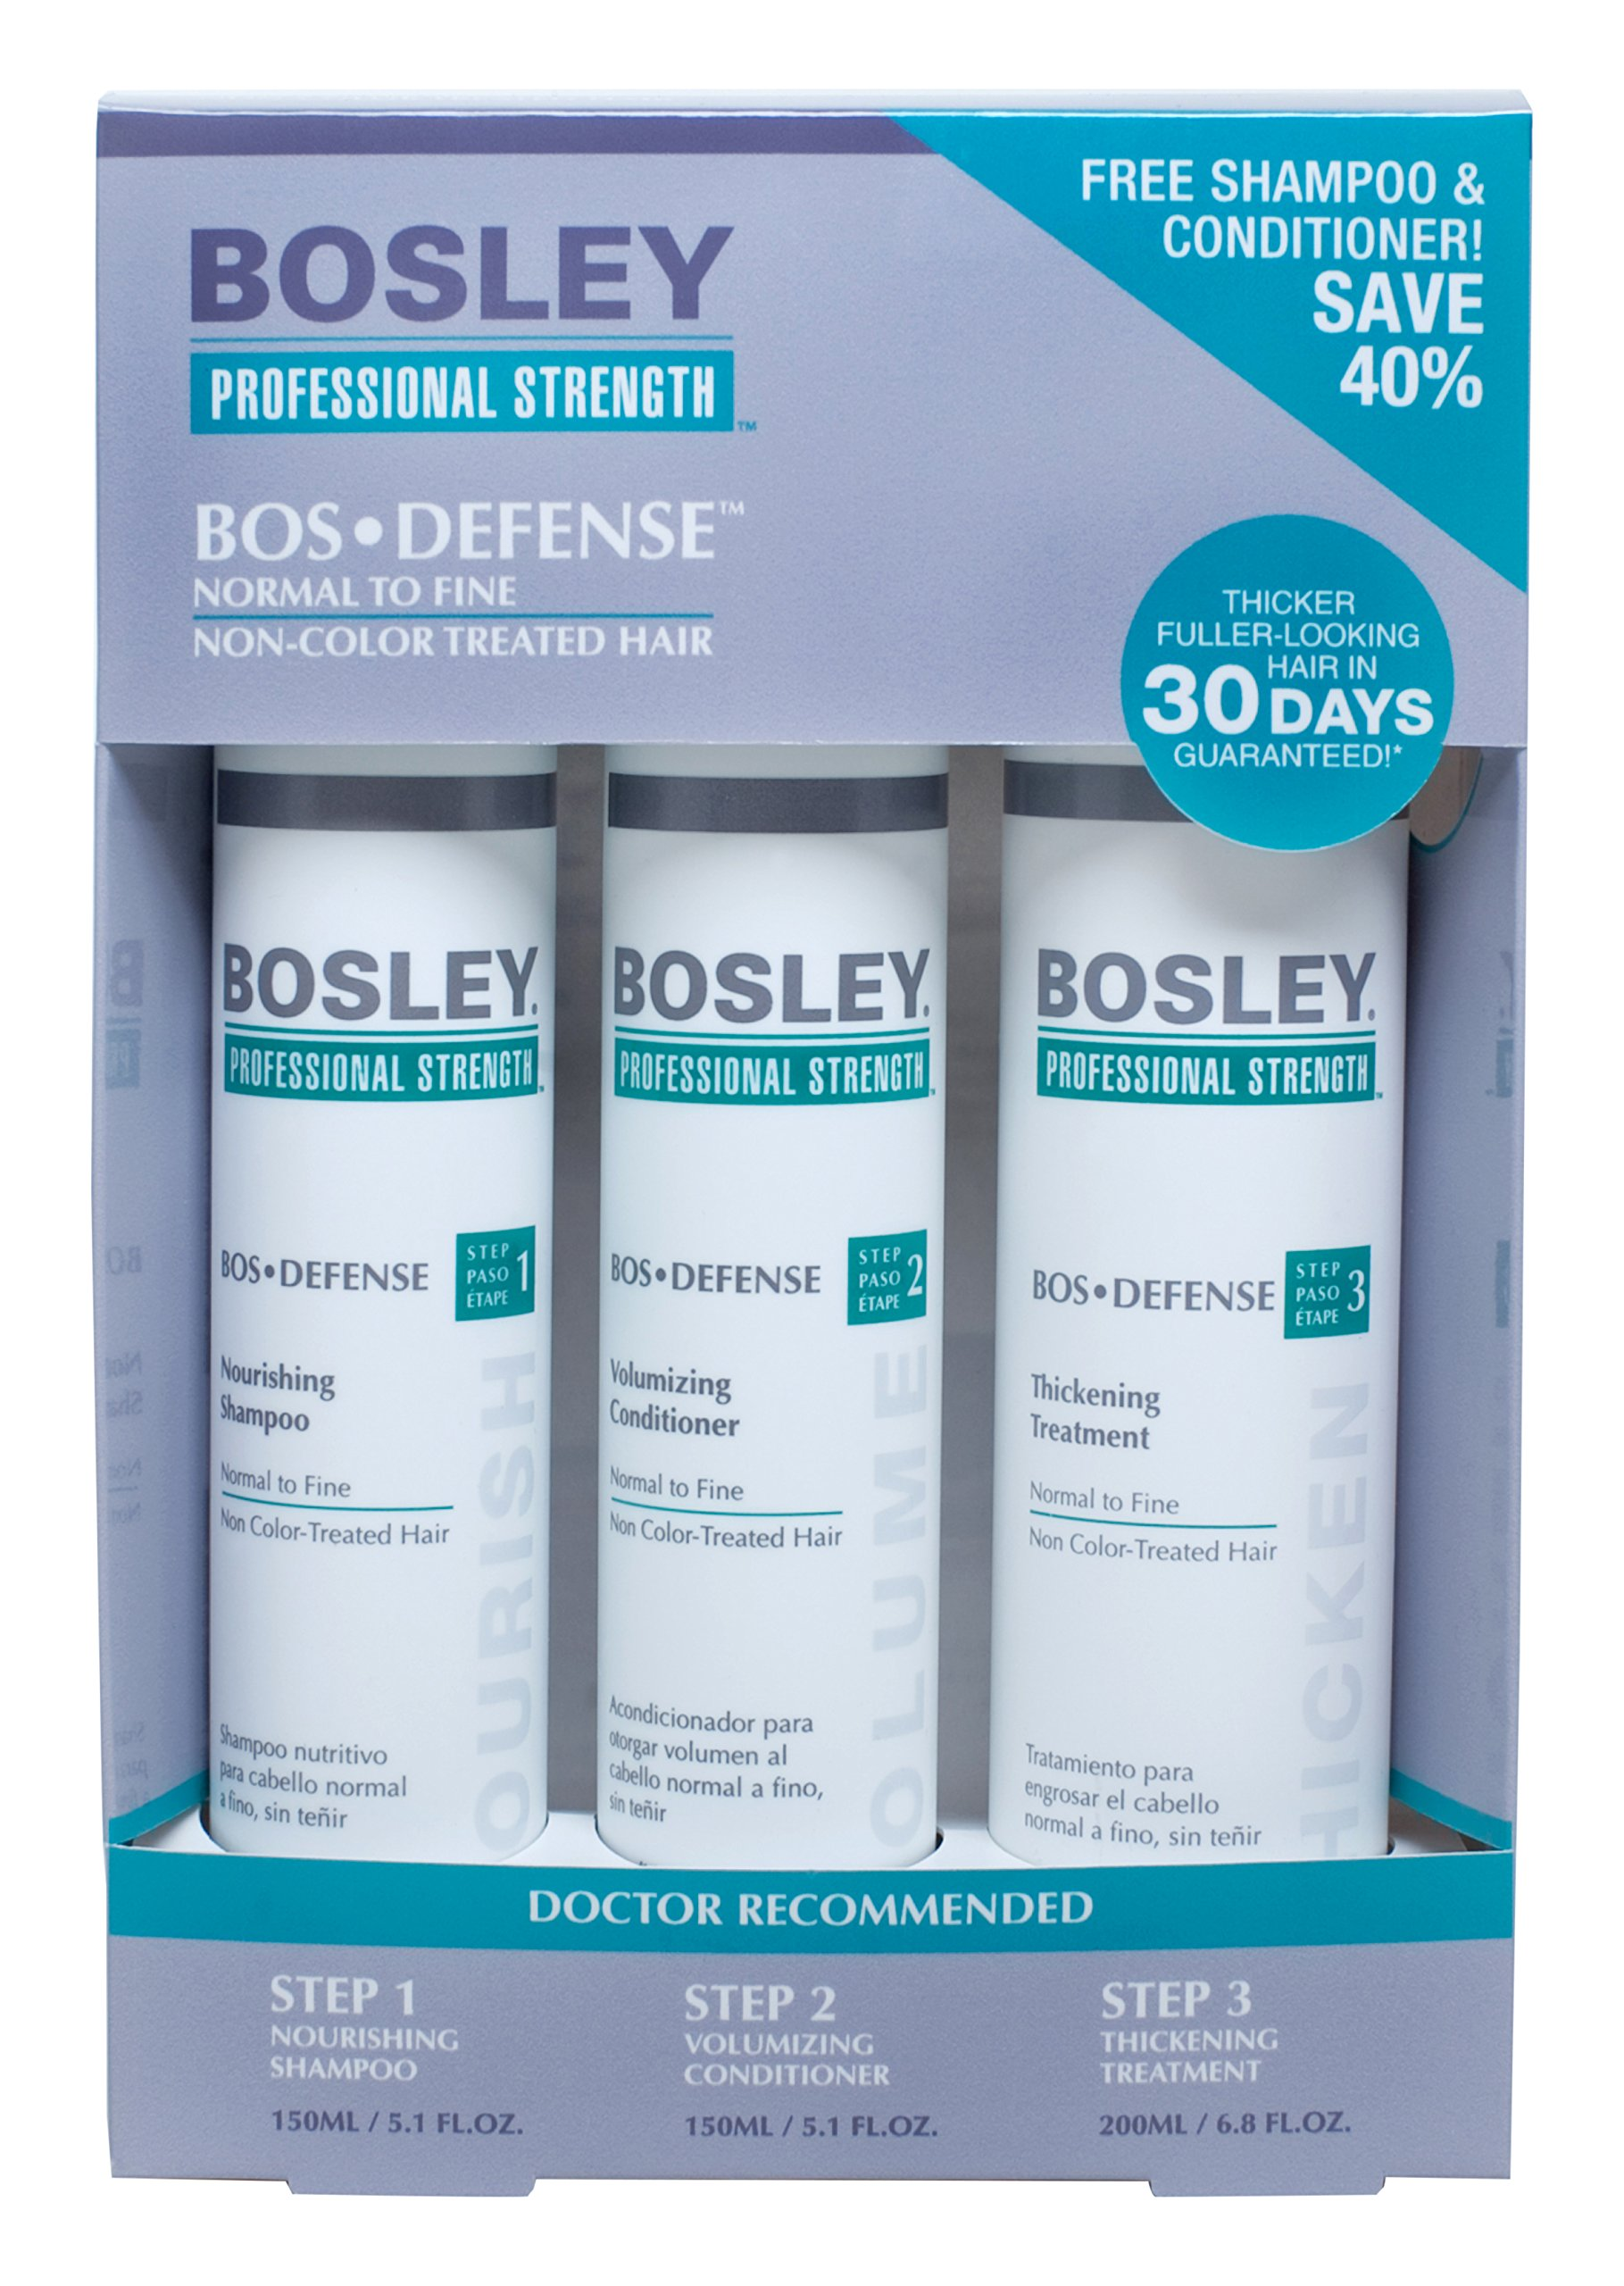 Bosley Professional Strength BOSDefense Starter Pack For Non Color-Treated Hair by Bosley Professional Strength